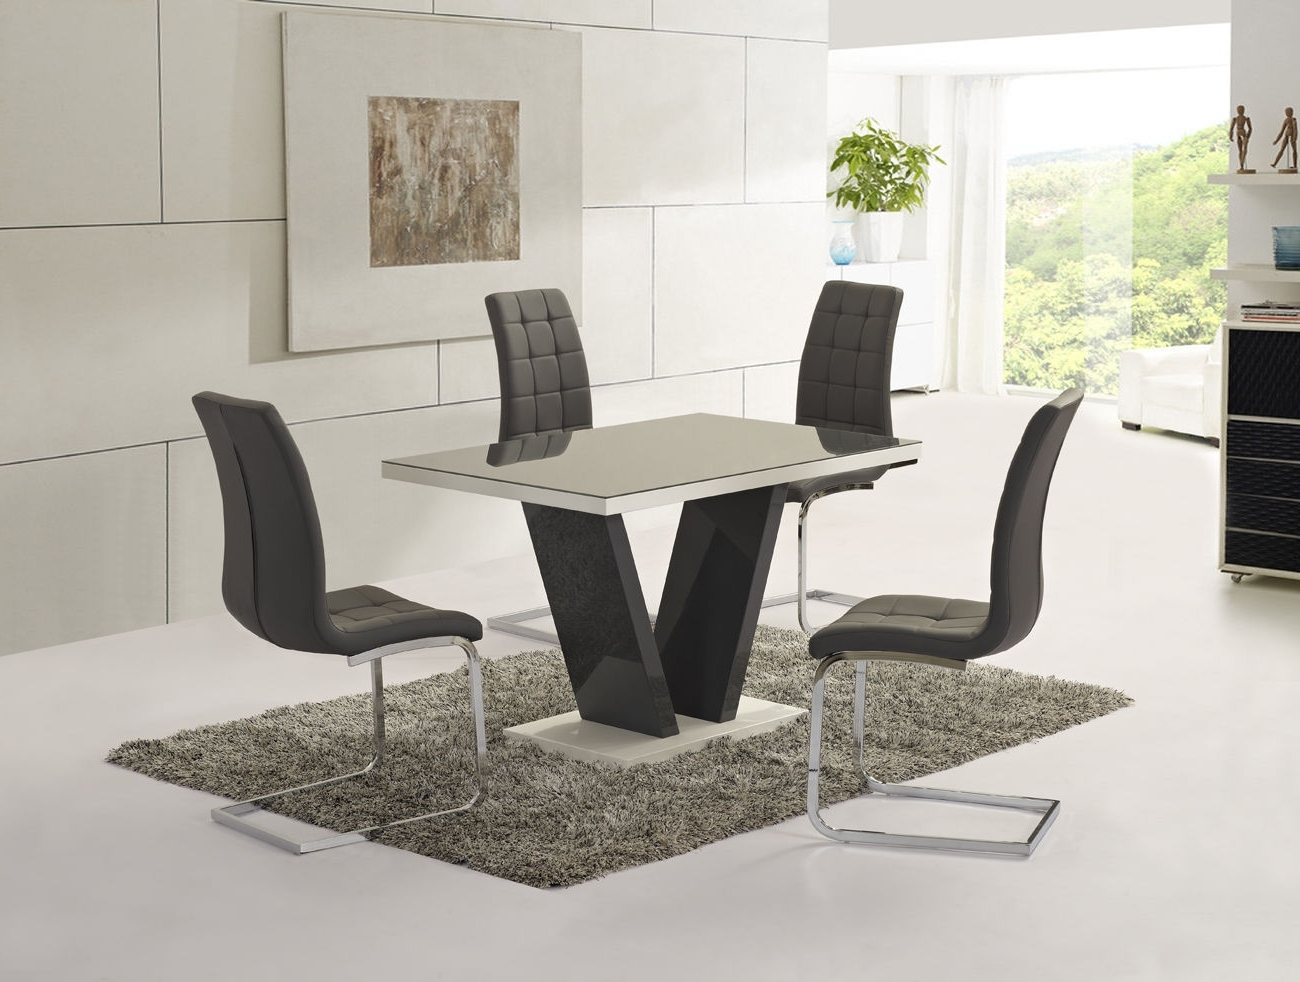 Most Recently Released Black High Gloss Dining Chairs Pertaining To Ga Vico Gloss Grey Glass Top Designer 160Cm Dining Set – 4 6 Grey (Gallery 5 of 25)